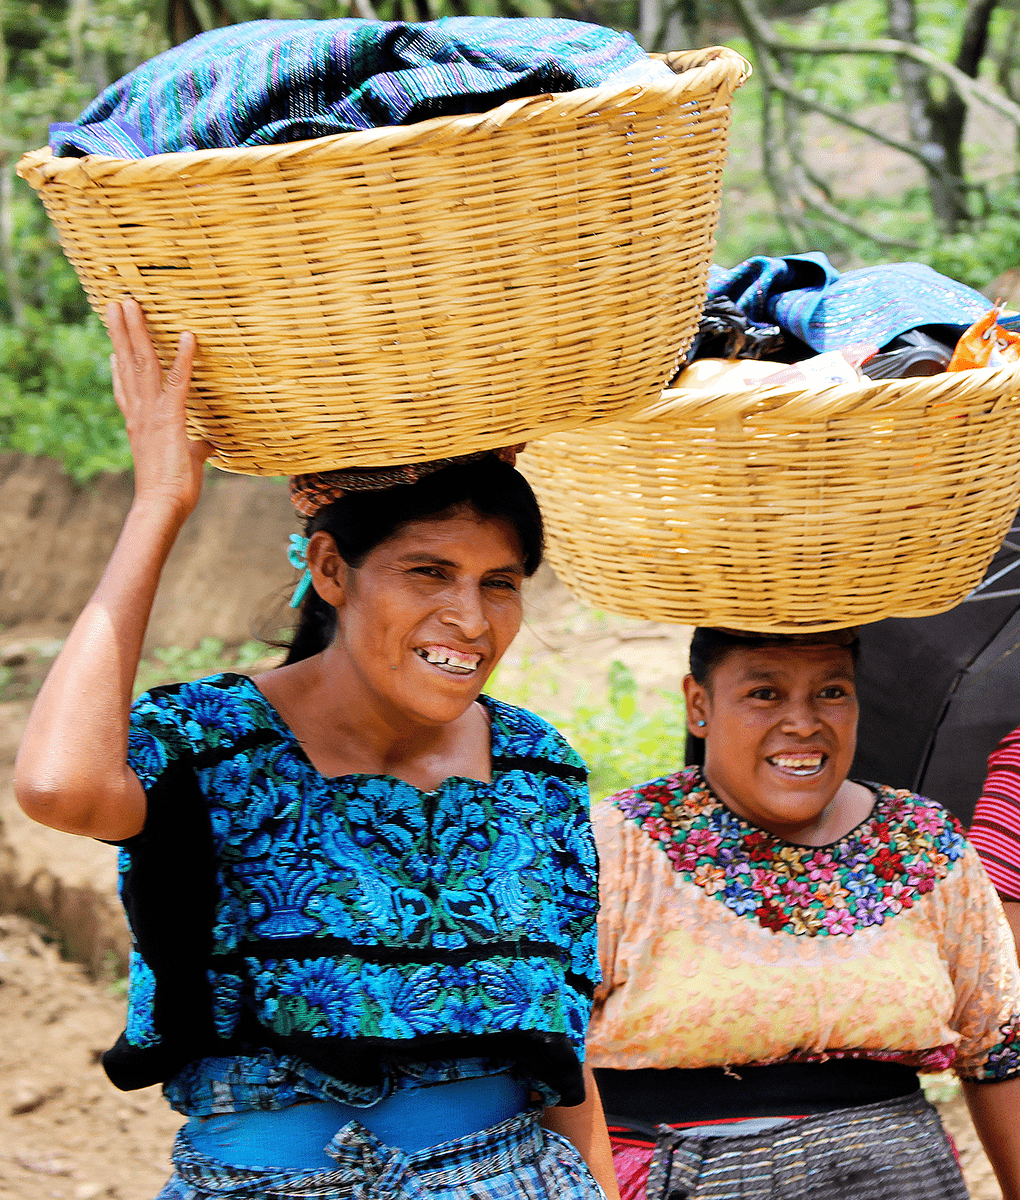 Selling Tortillas in Guatemala, Union Coffee